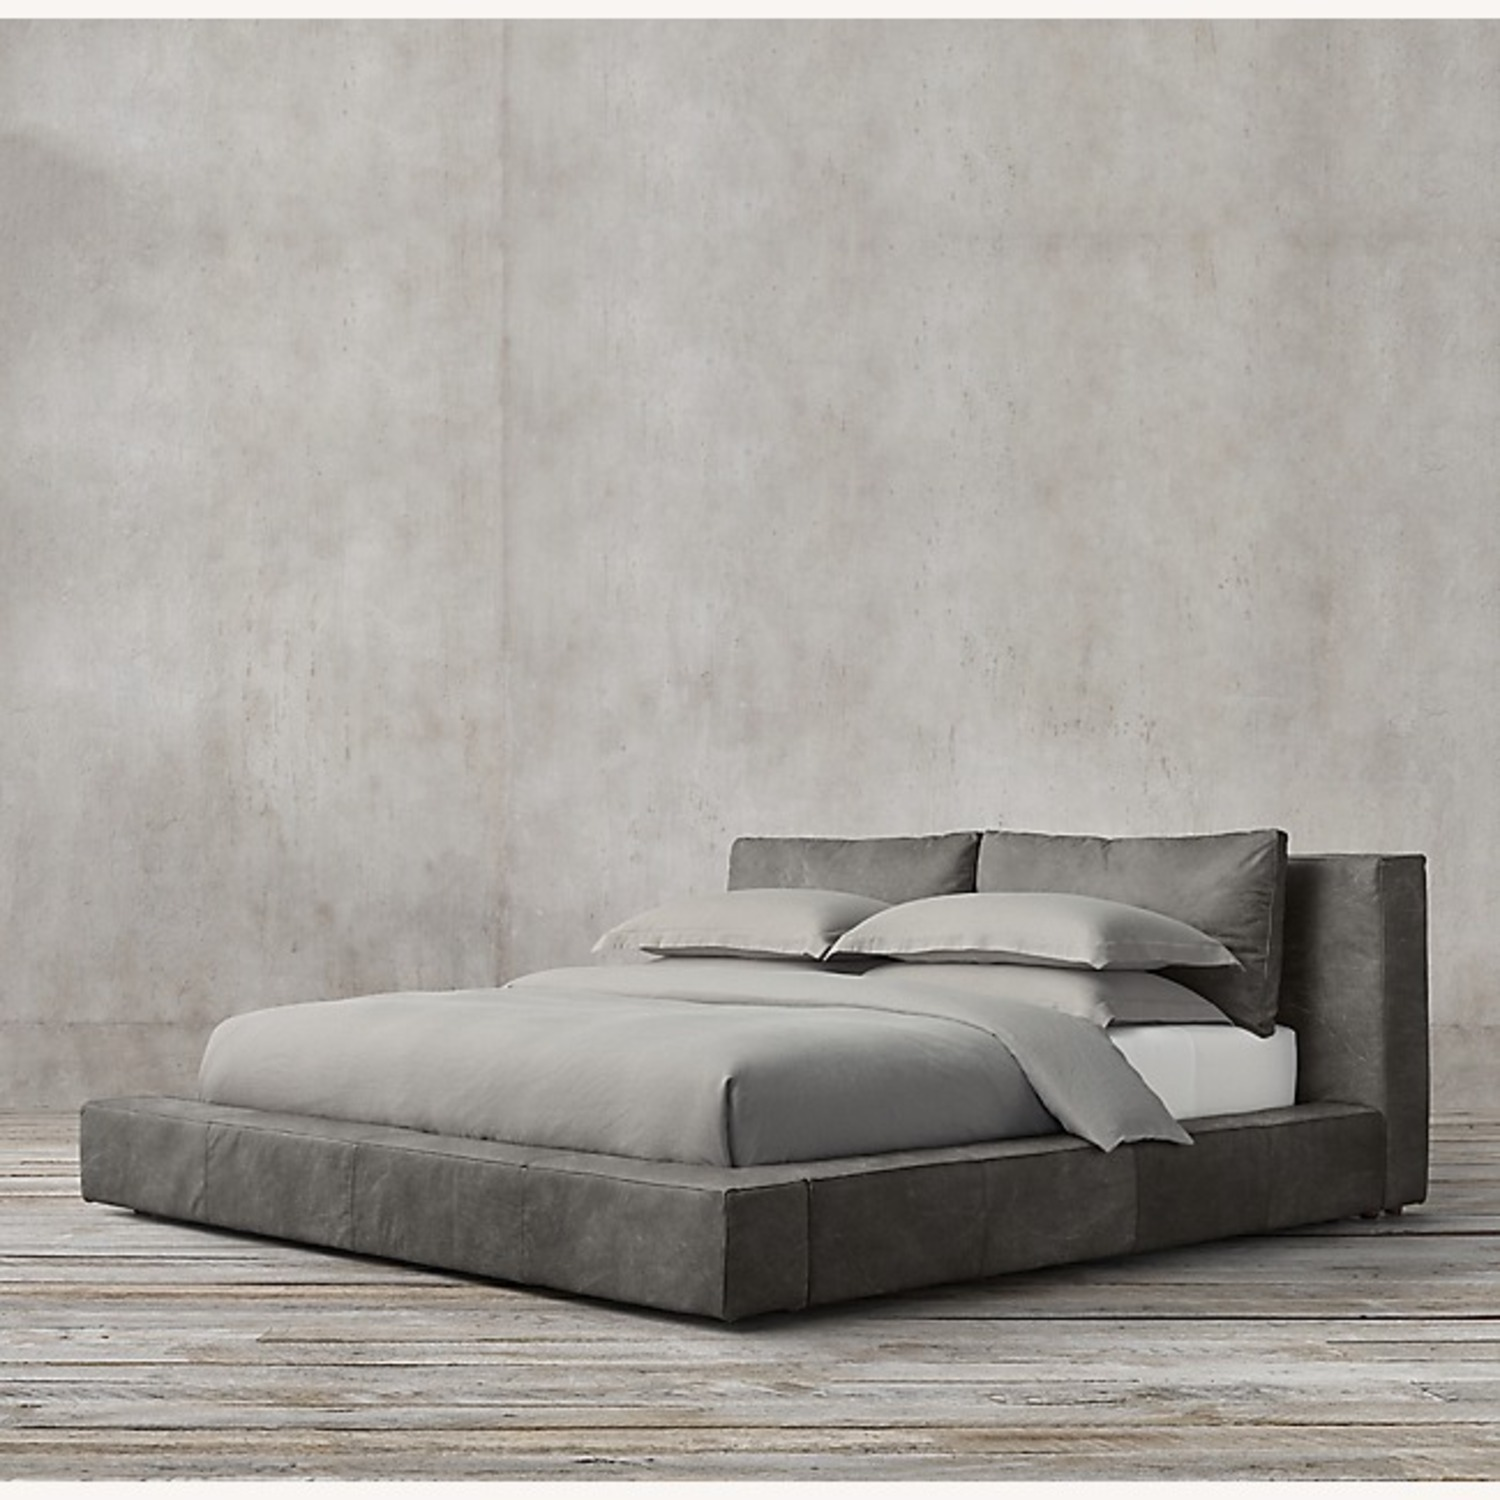 Restoration Hardware - Leather Platform Bed - image-0